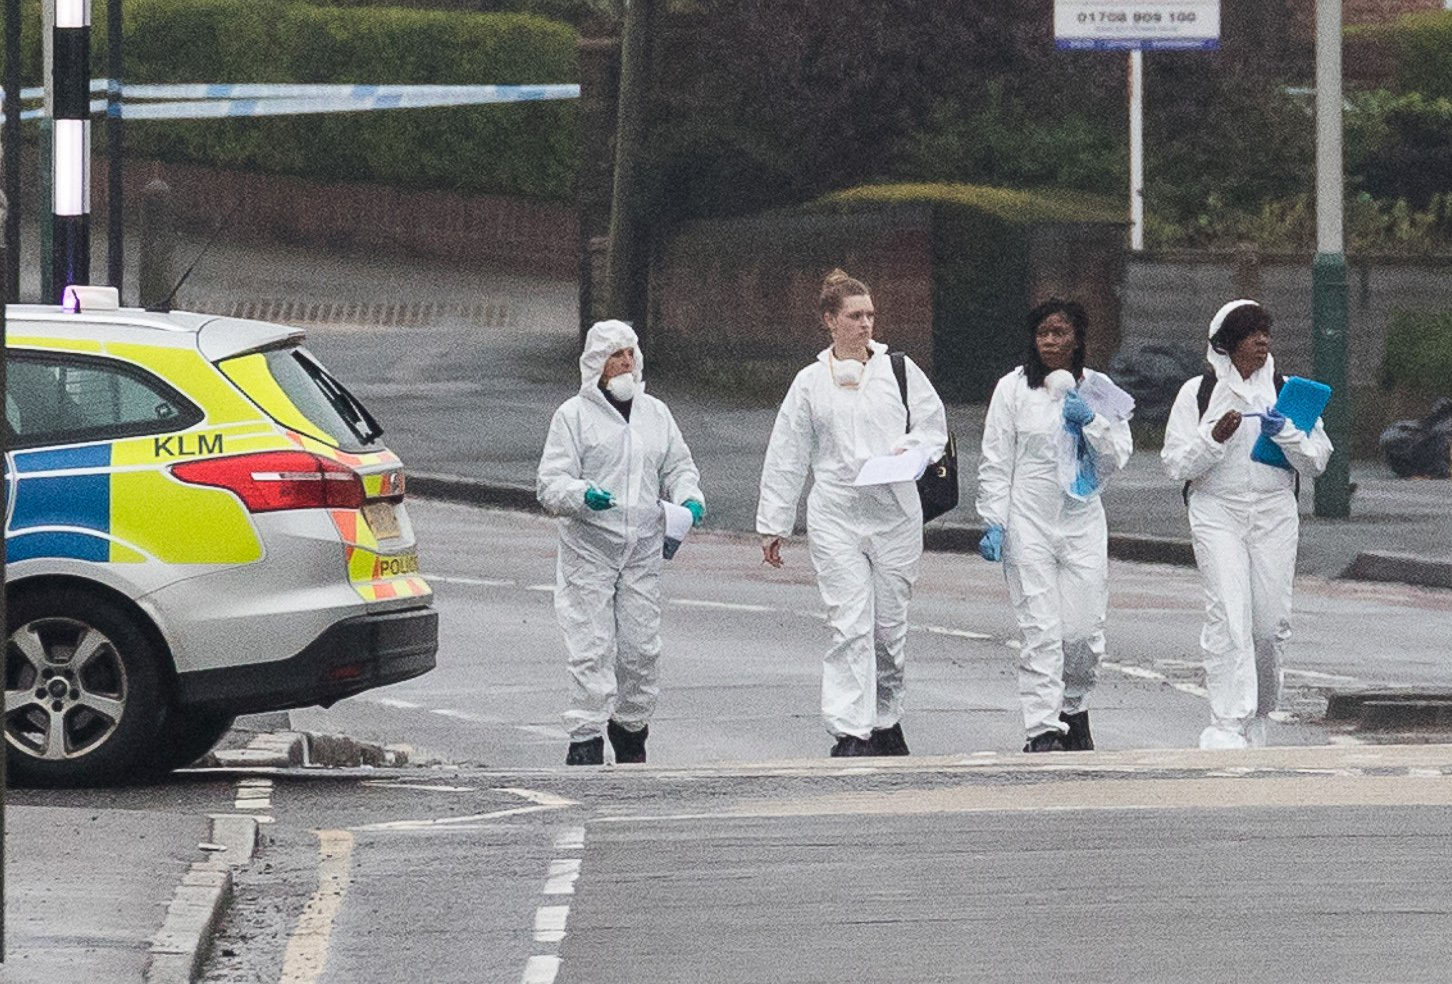 ? Licensed to London News Pictures. 09/04/2018. London, UK. Police and forensic officers at the scene in Collier Row, Romford where at 4:45hrs a man was shot by police and pronounced dead at the scene. Photo credit: Vickie Flores/LNP